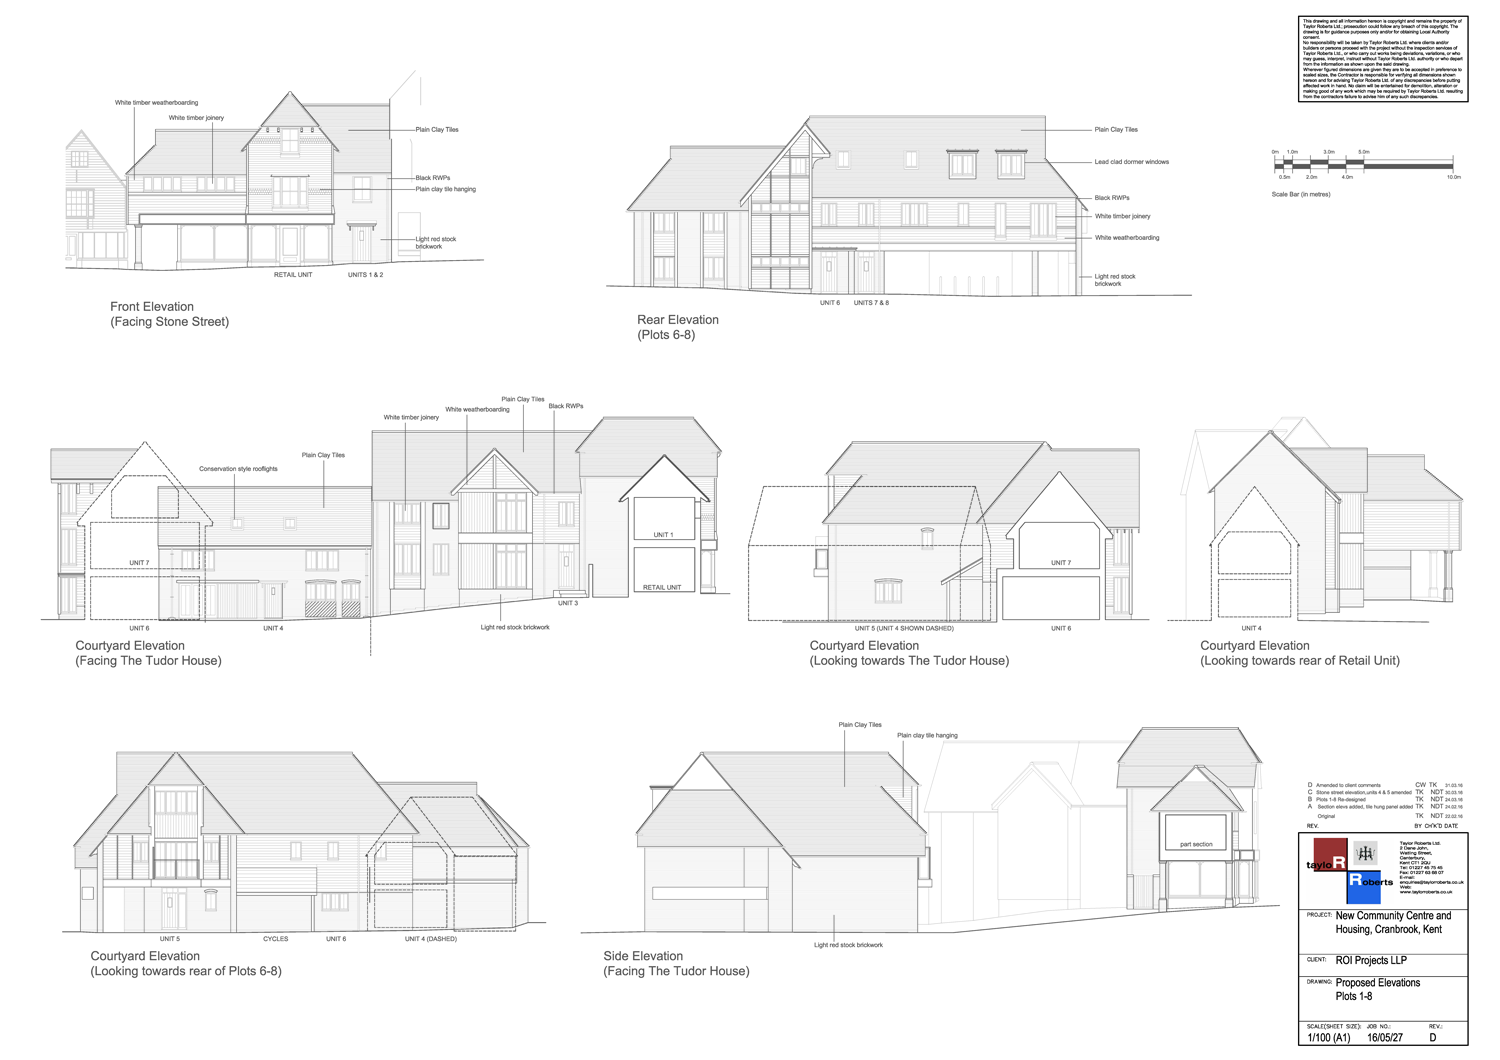 16-05-27-D---Proposed-Elevations-(Plots-1-8).png